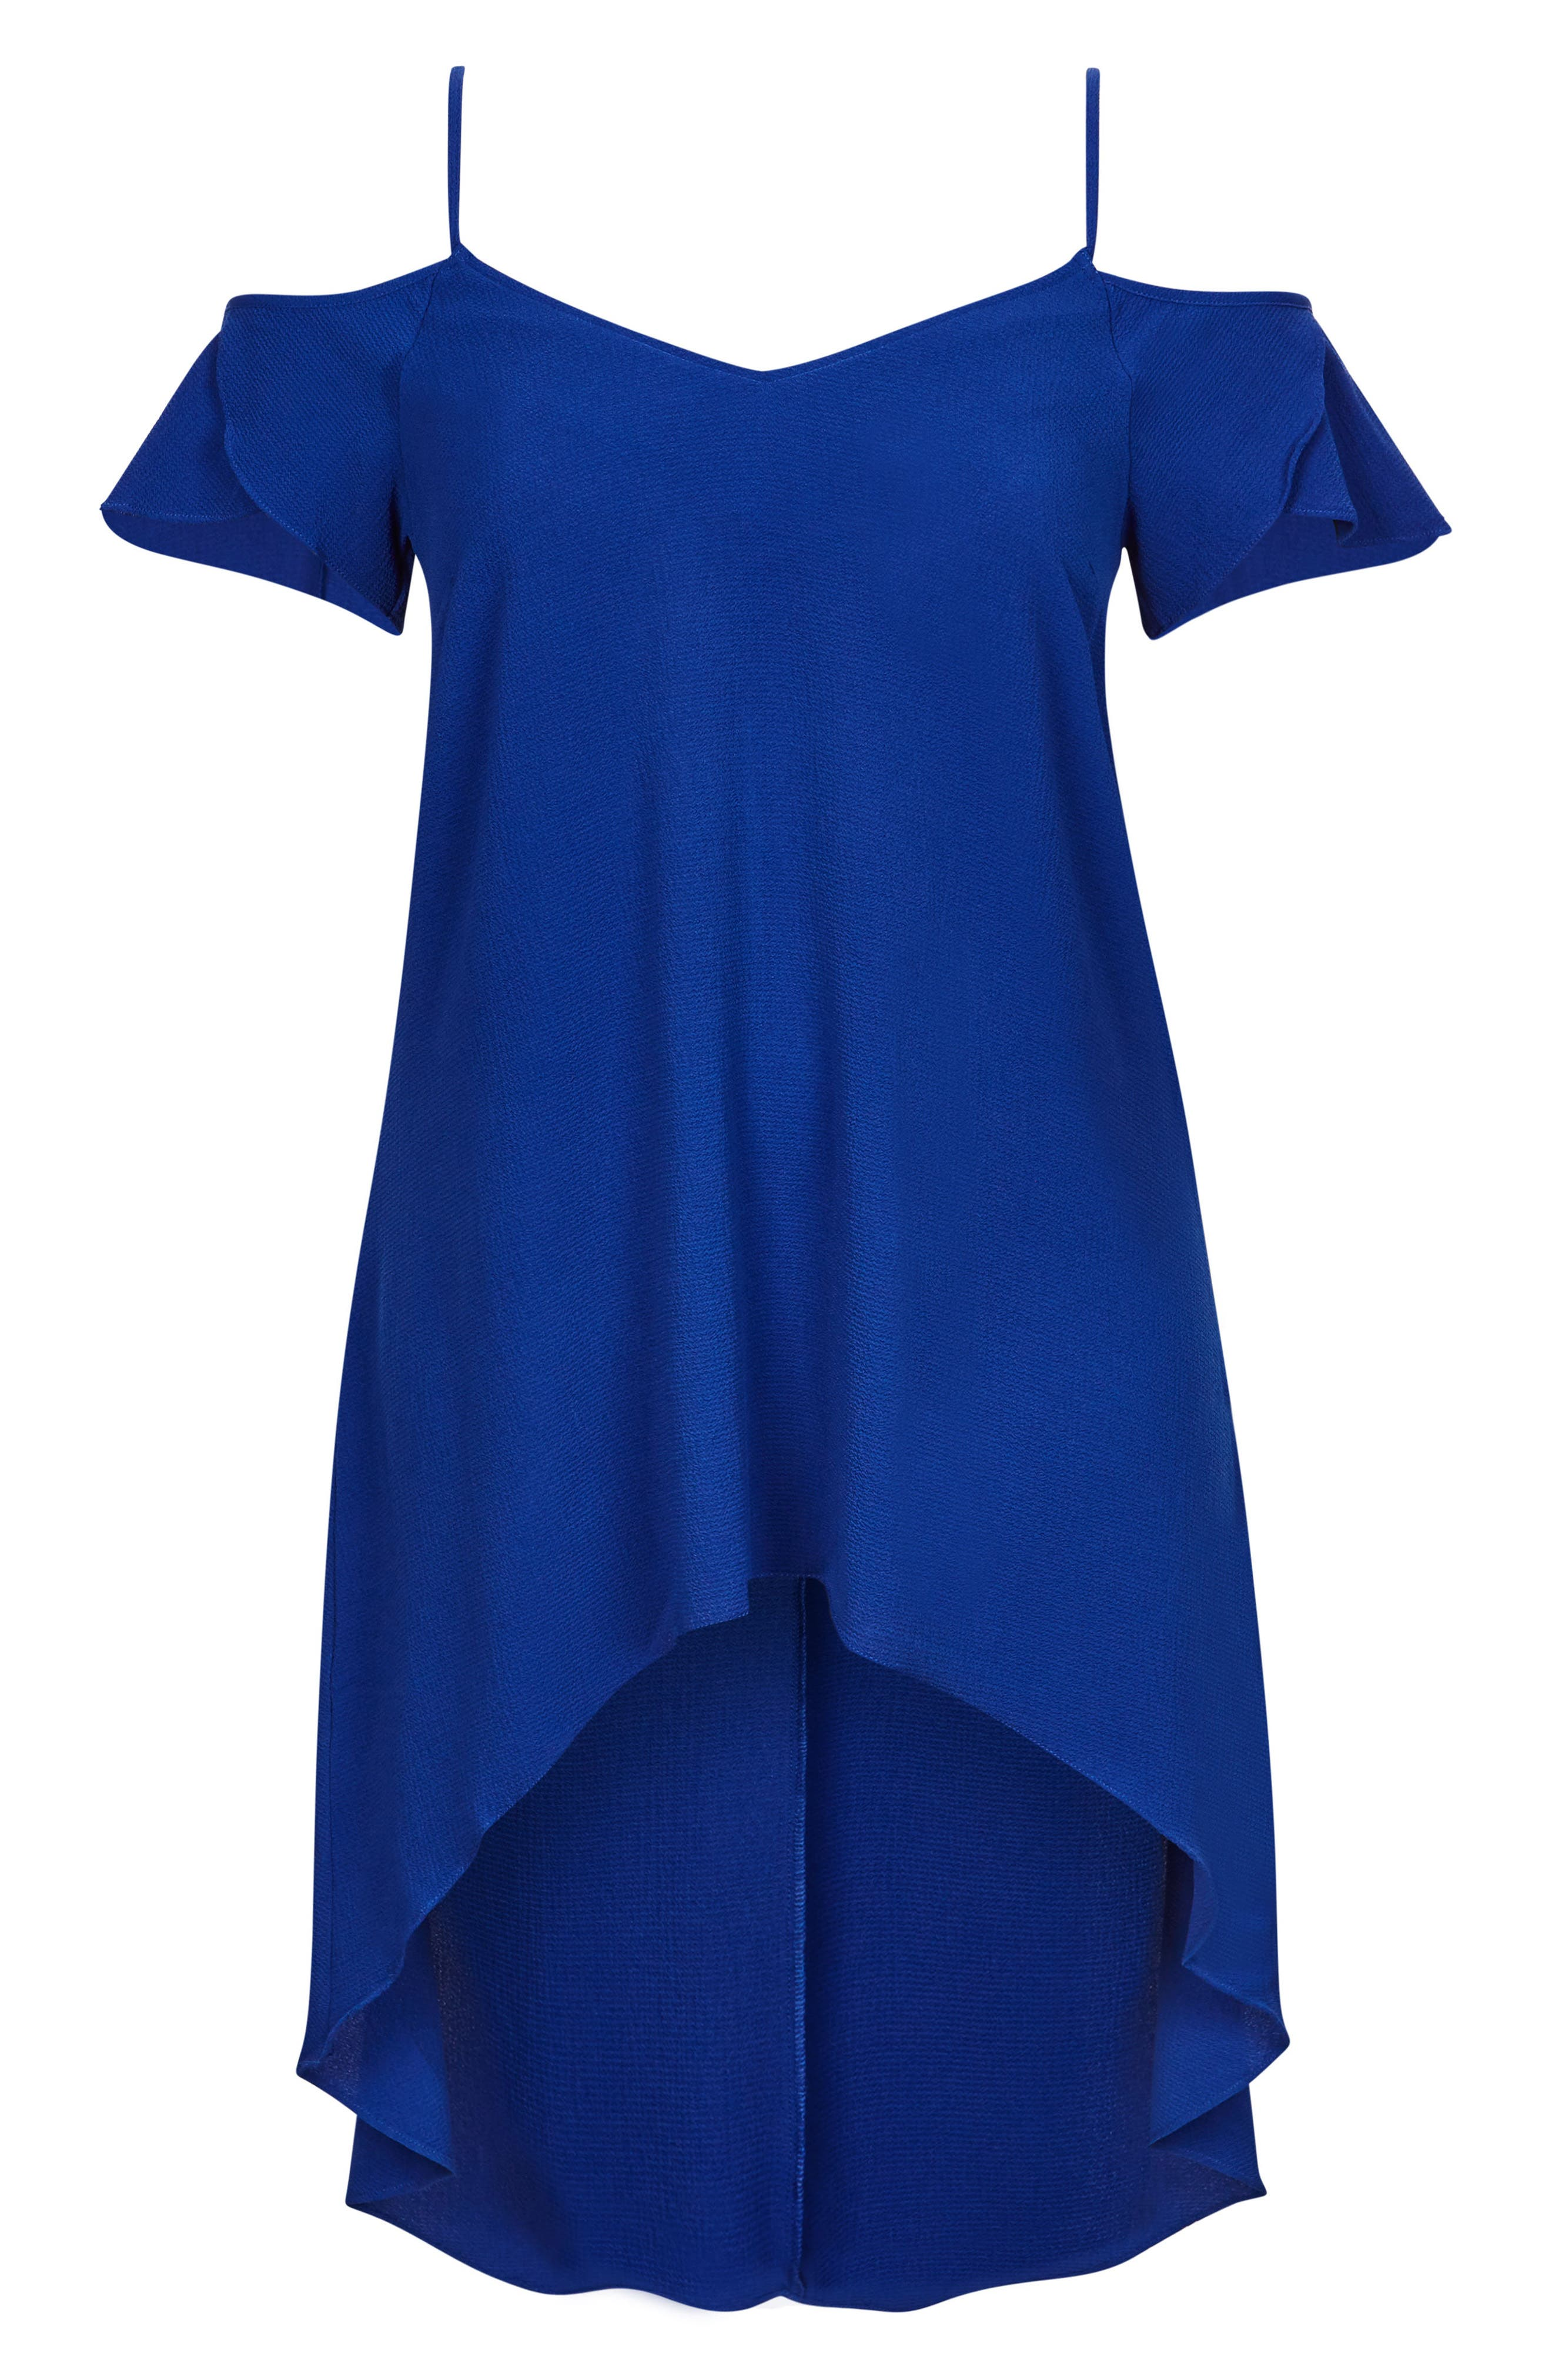 Charmer Off Shoulder High/Low Top,                             Alternate thumbnail 3, color,                             Lapis